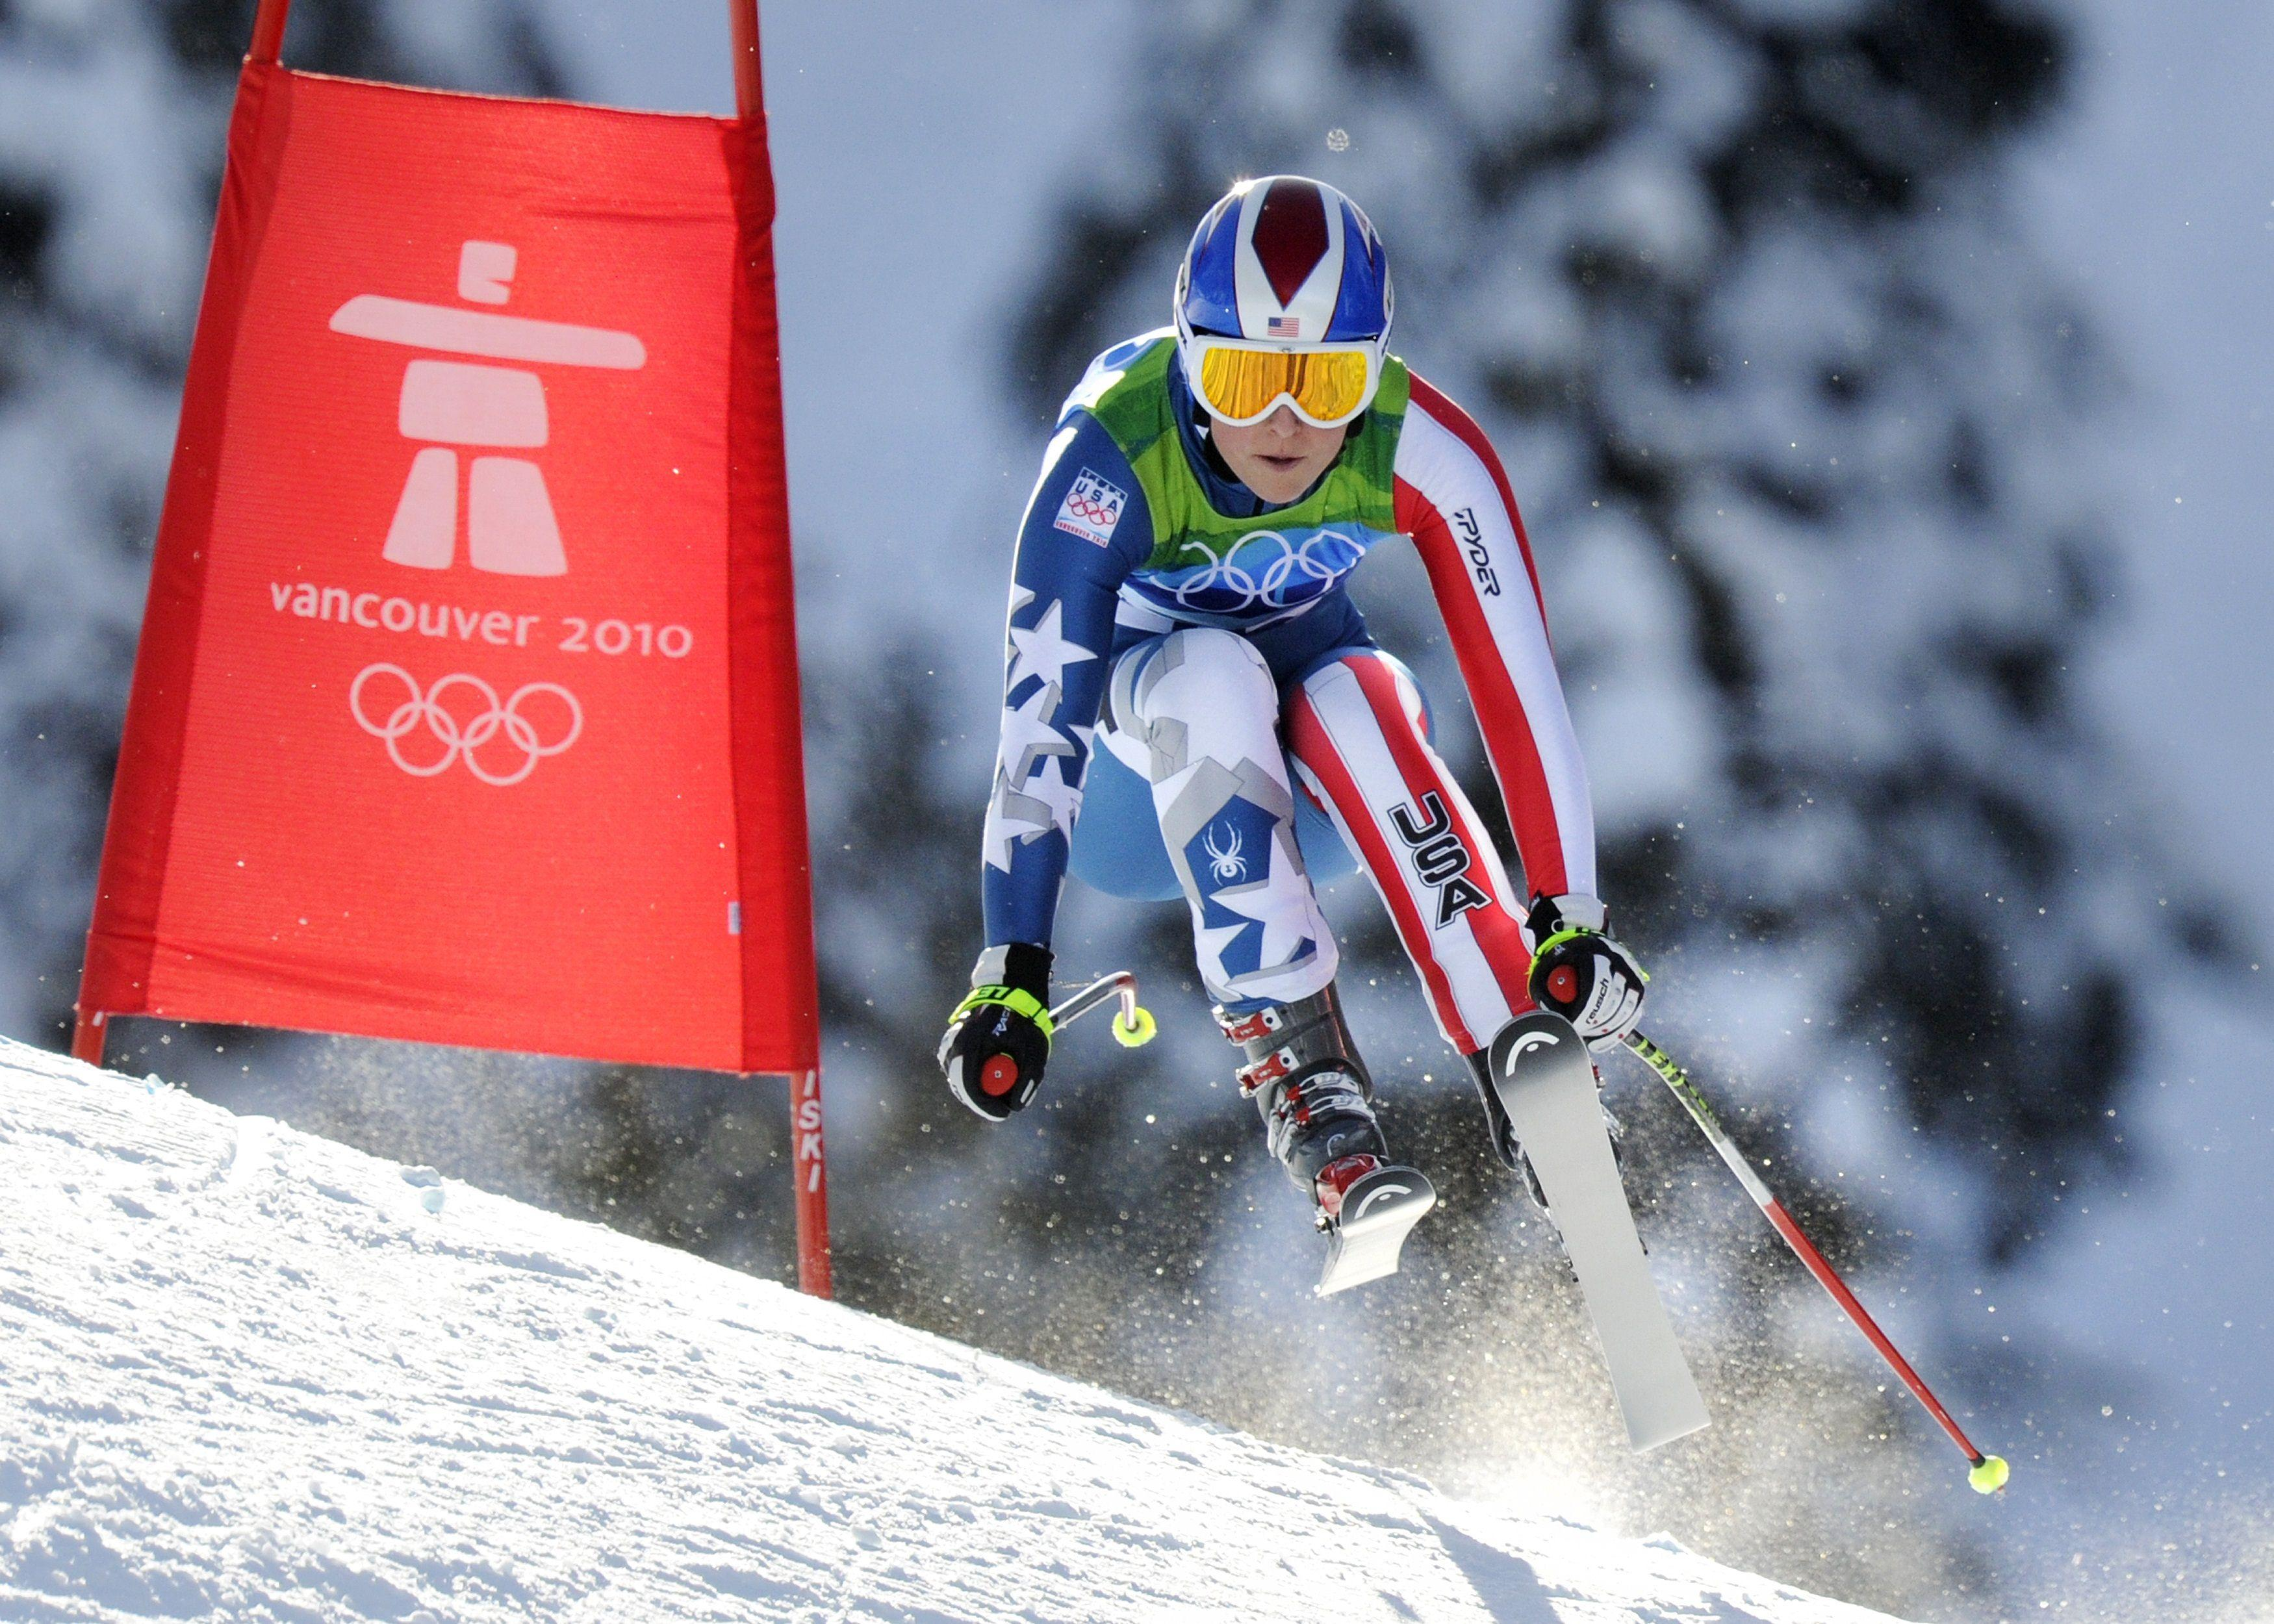 Lindsey Vonn is calling time on her illustrious career as a skier